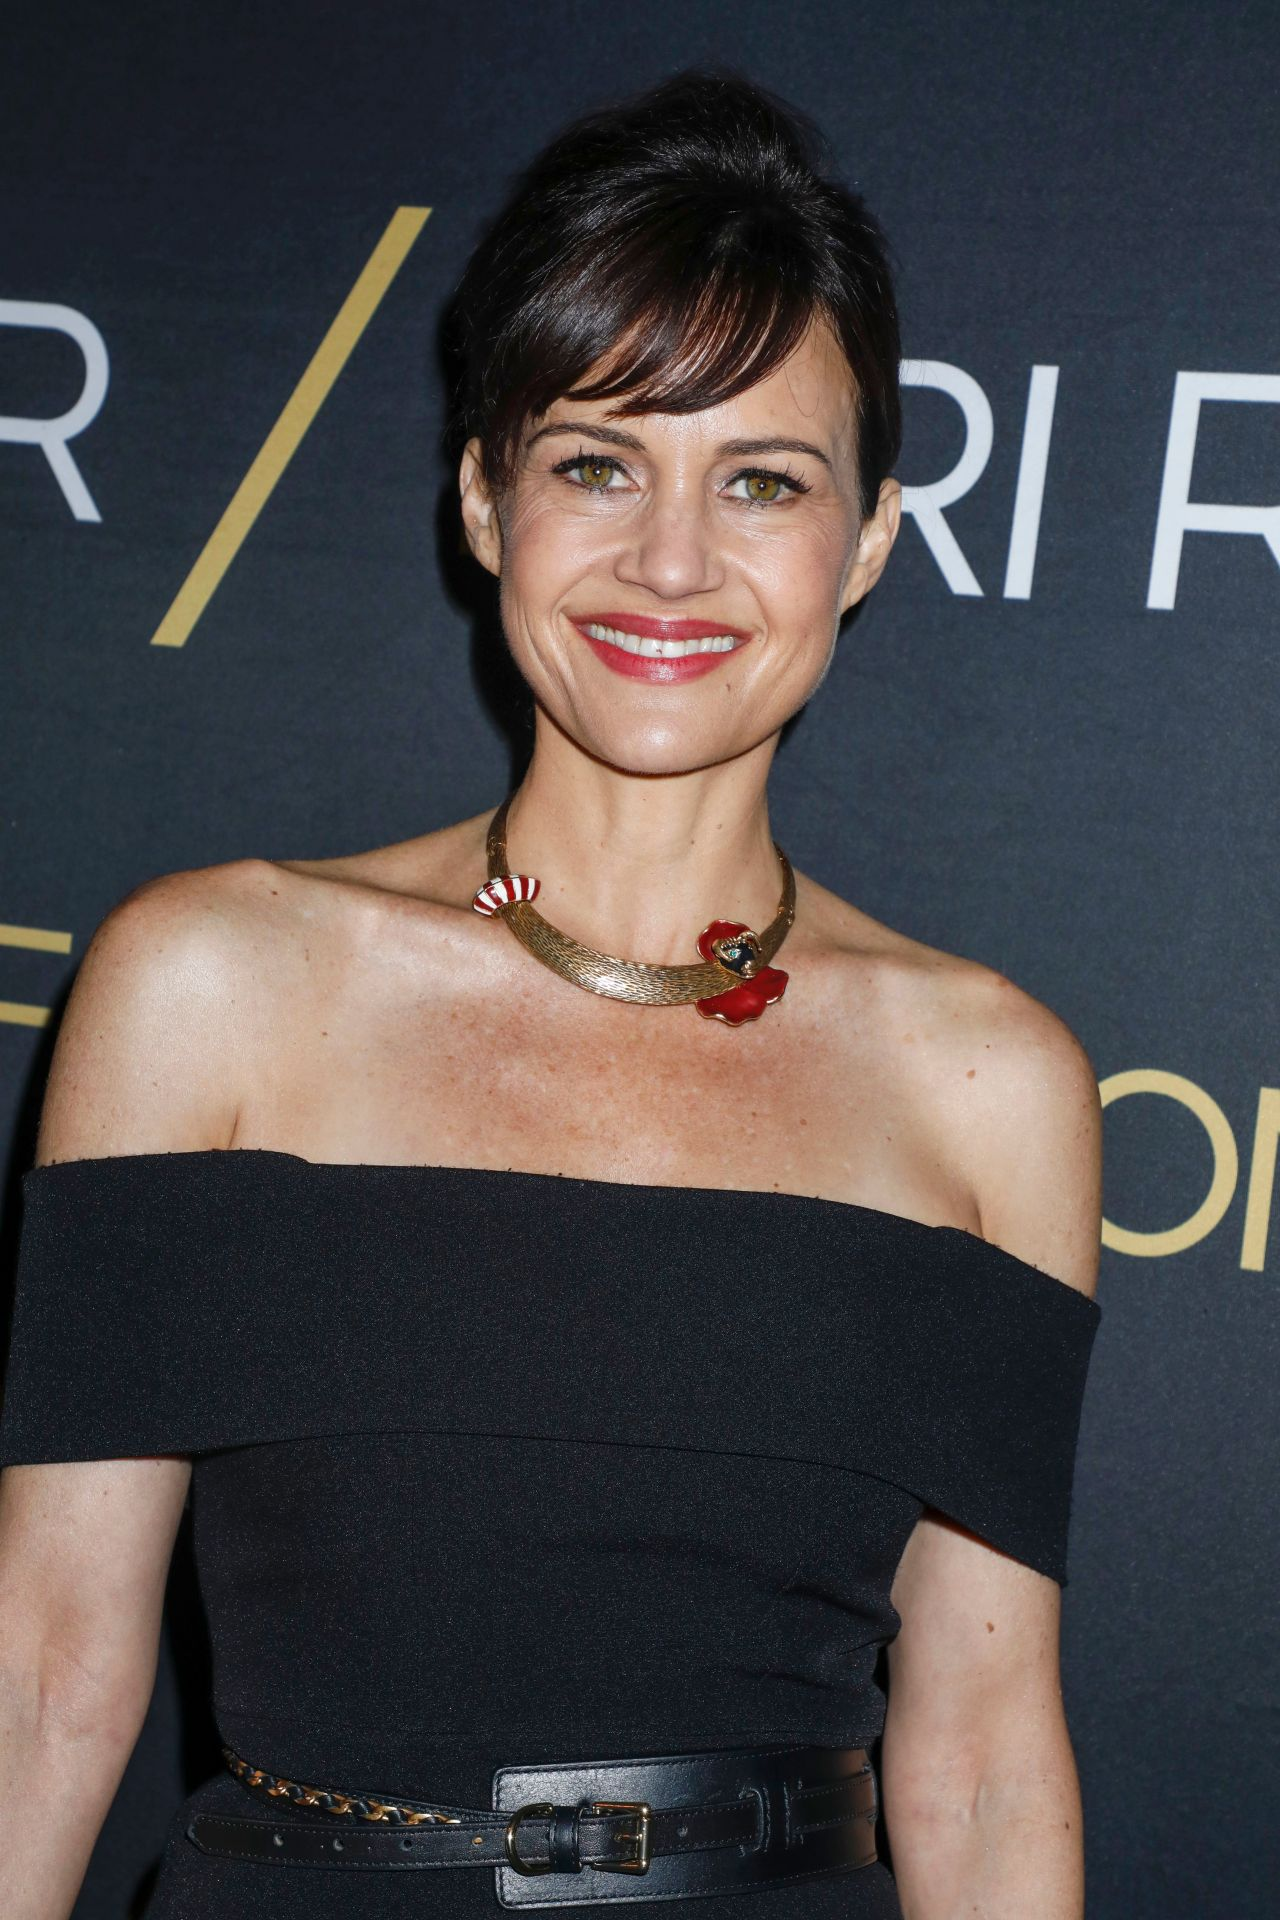 CARLA GUGINO at The Haunting of Hill House Premiere in Los Angeles 10/08/2018 - HawtCelebs